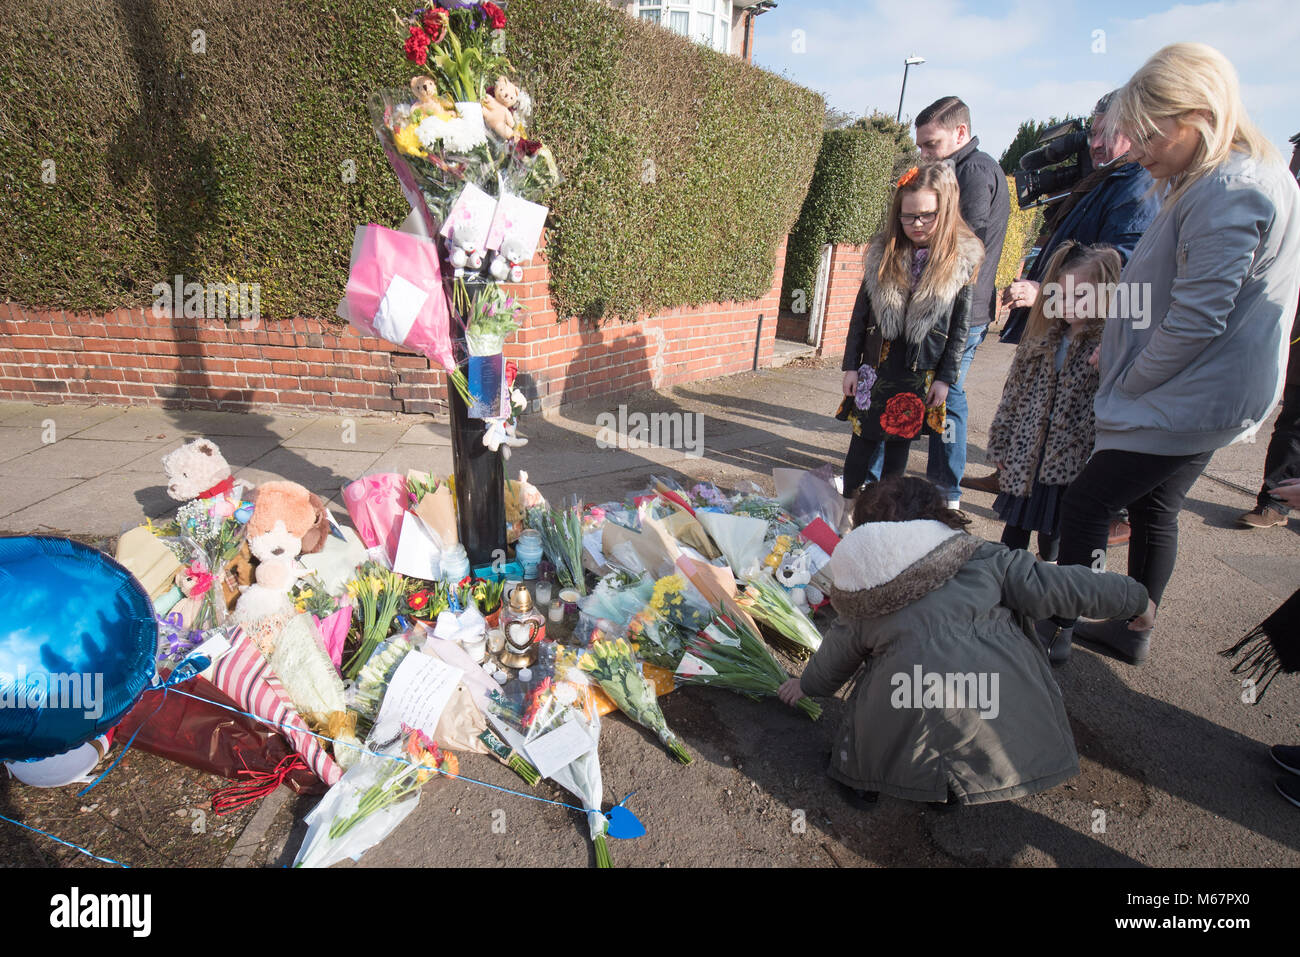 Longfellow Road, Stoke, Coventry, UK. 23rd February 2018. Floral tributes and messages of condolence are placed - Stock Image